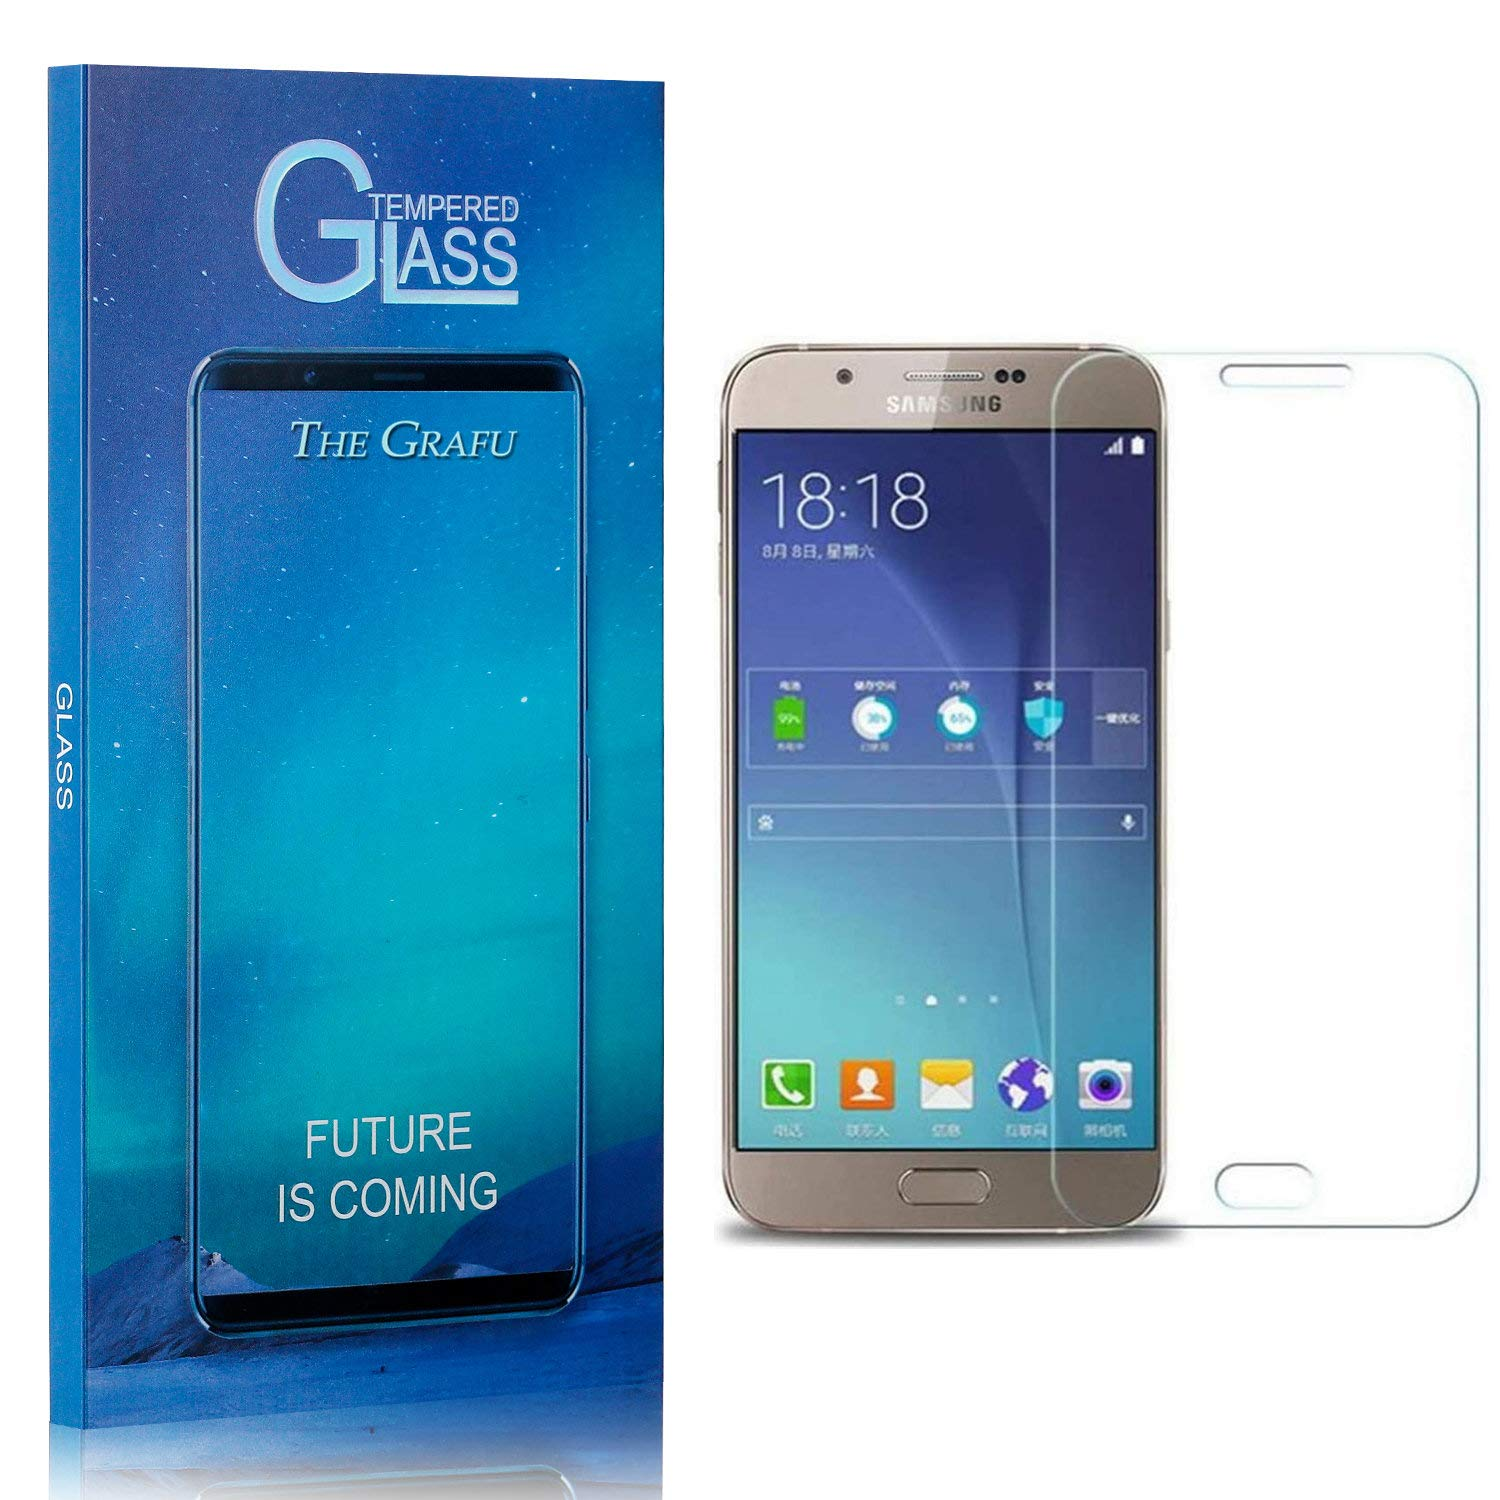 A9 Star Mobile Screen Protective Film 25 PCS 9H 5D Full Glue Full Screen Tempered Glass Film for Galaxy A8 Star yf